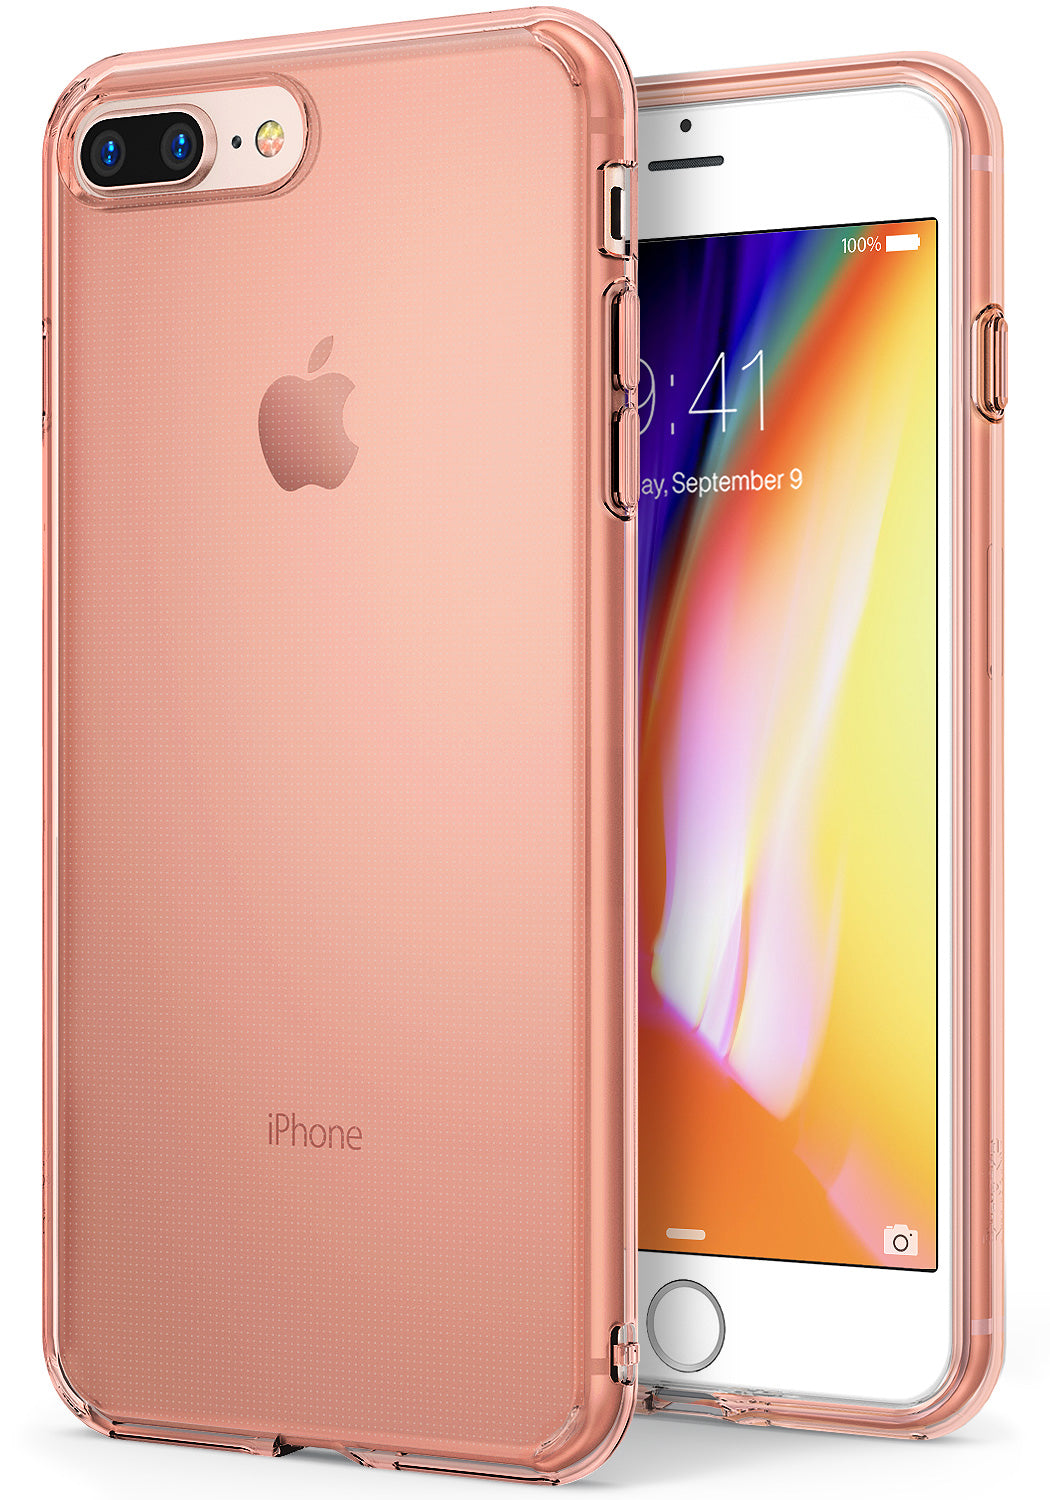 ringke air lightweight flexible tpu thin case cover for iphone 7 plus 8 plus main rose gold